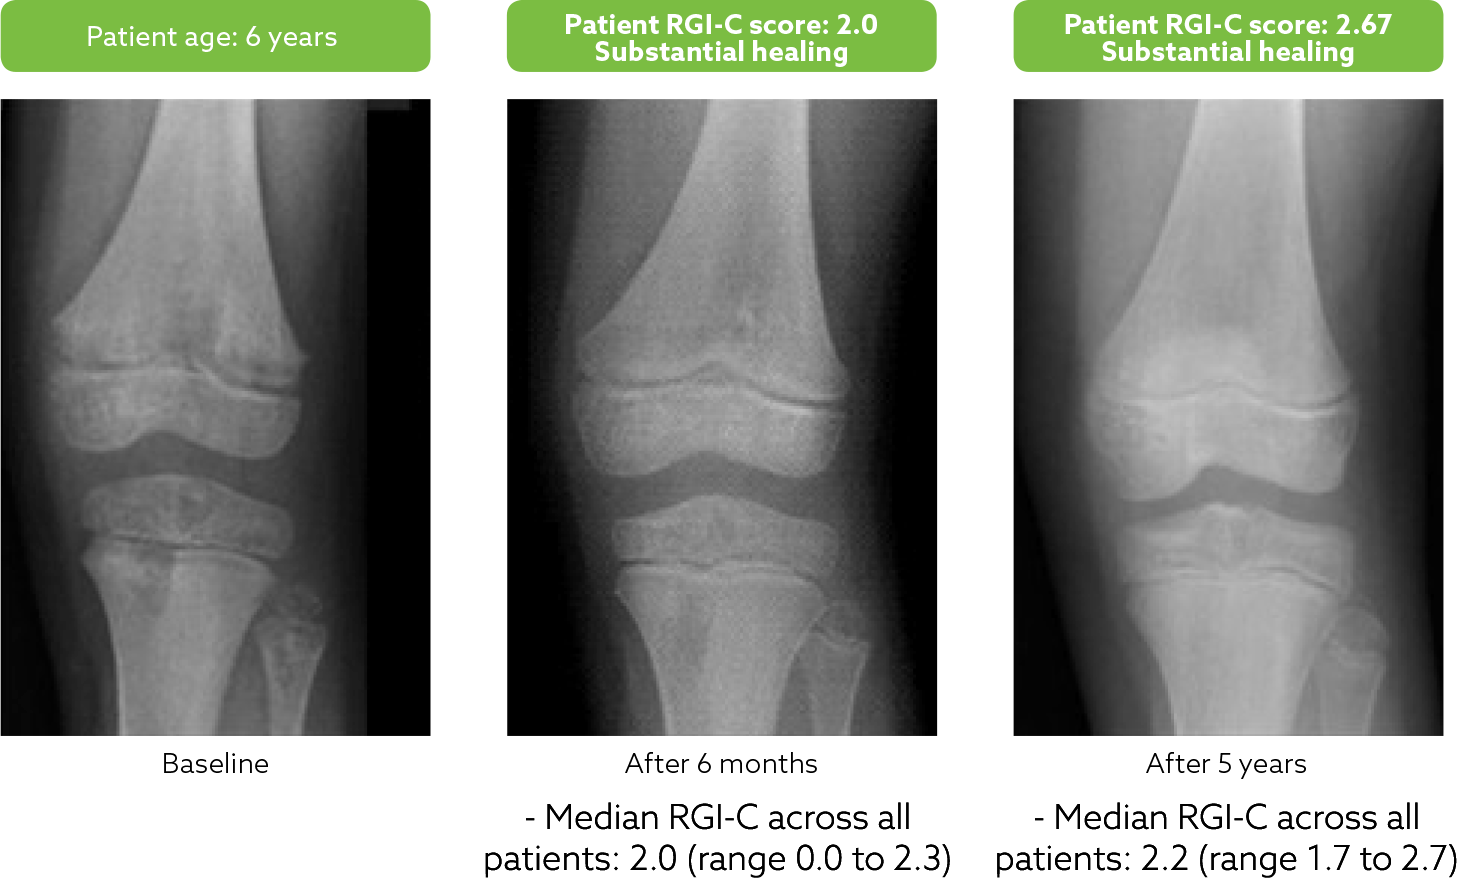 Knee of patient at baseline (left), after 6 months of treatment with Strensiq (middle), and after 5 years of treatment with Strensiq (right)